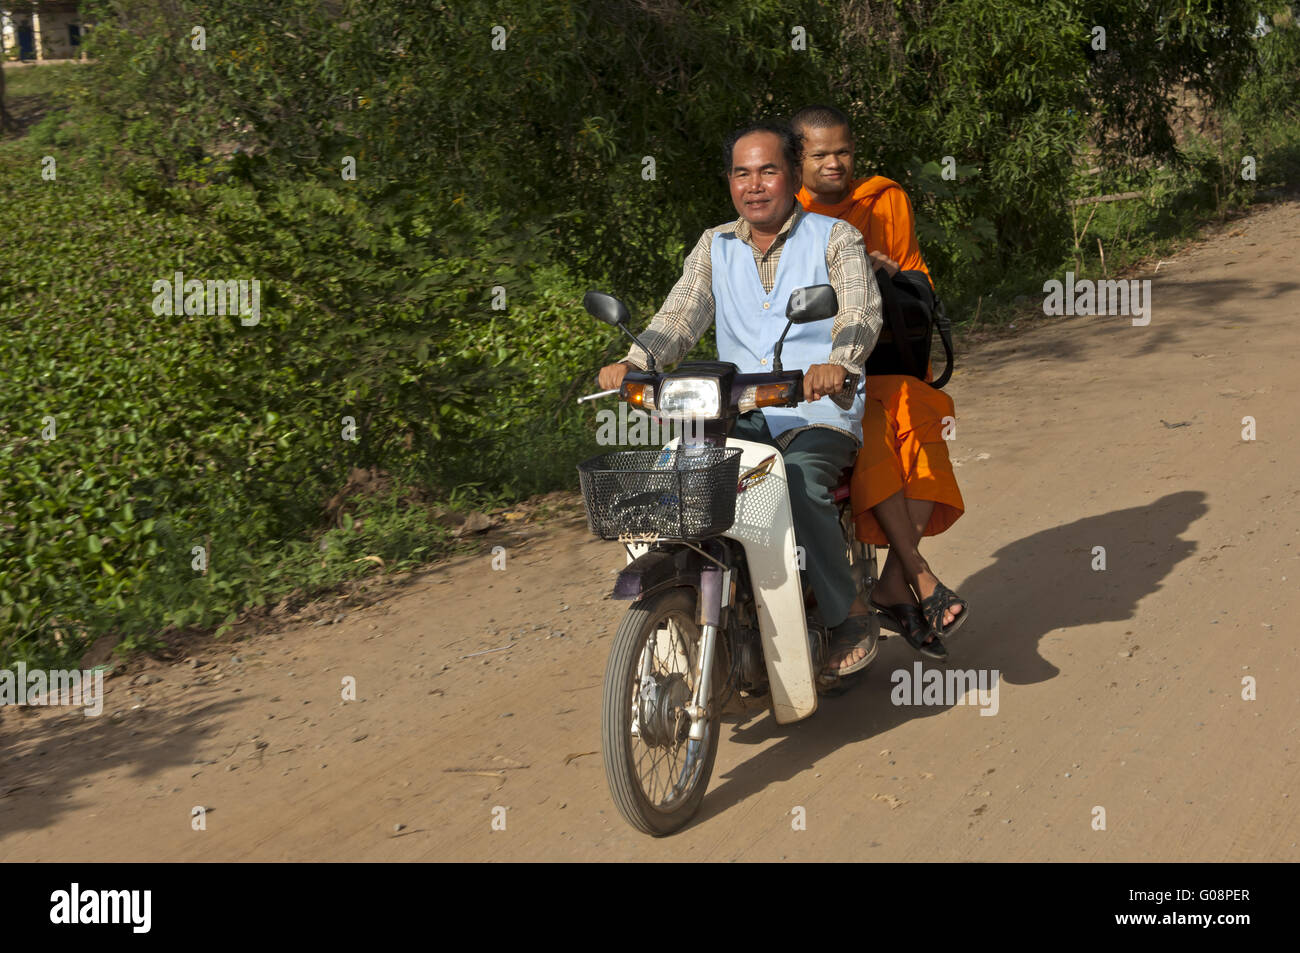 Buddhist monk riding as passenger on a motor-bike Stock Photo